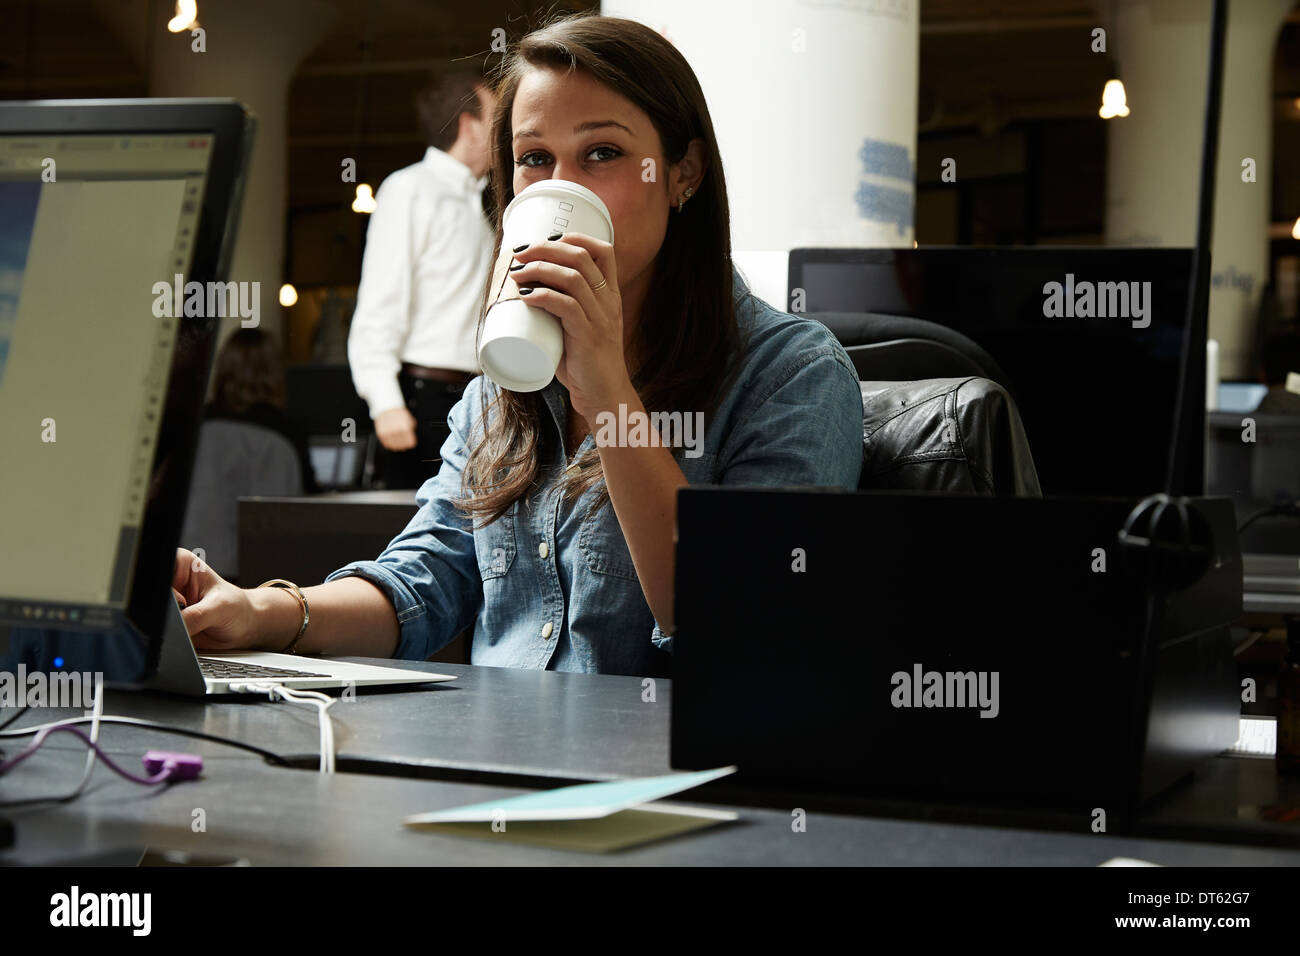 Young woman drinking coffee in office Photo Stock